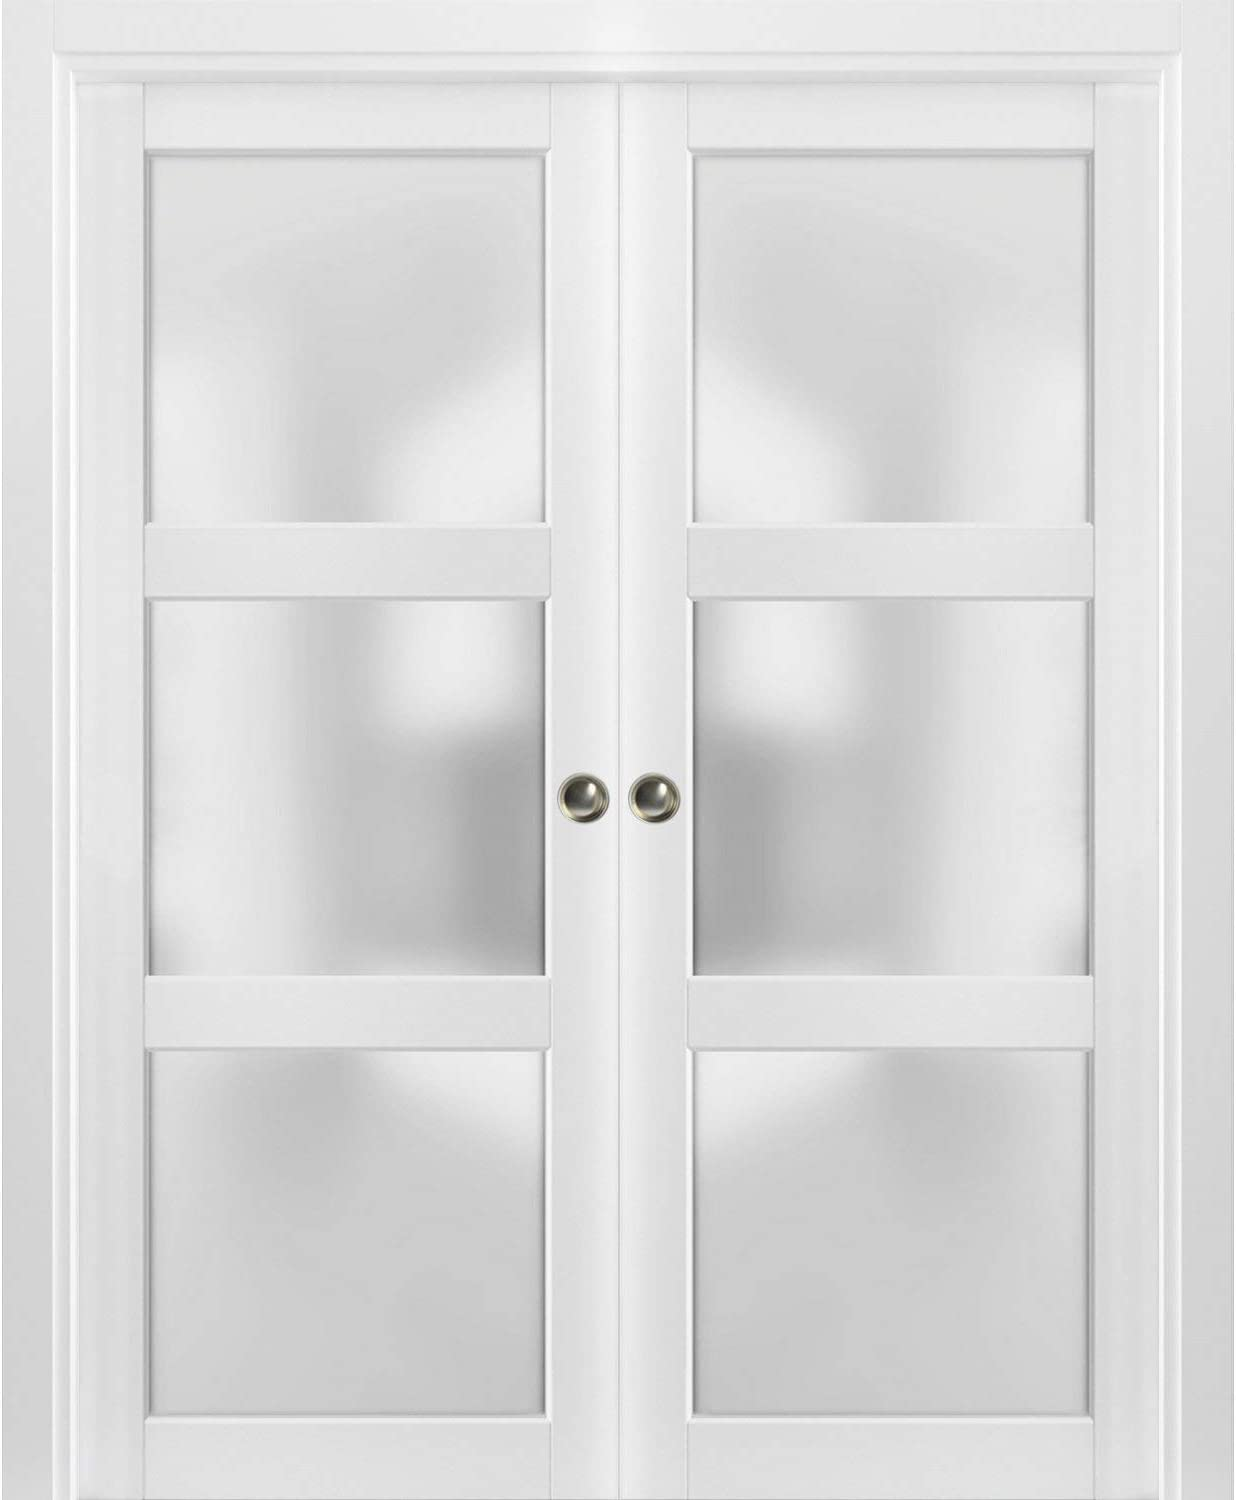 Lucia 2552 Matte White Kit Trims Rail Hardware Solid Wood Interior Bedroom Sturdy Doors Sliding French Double Pocket Doors 64 x 96 inches Frosted Glass 3 Lites